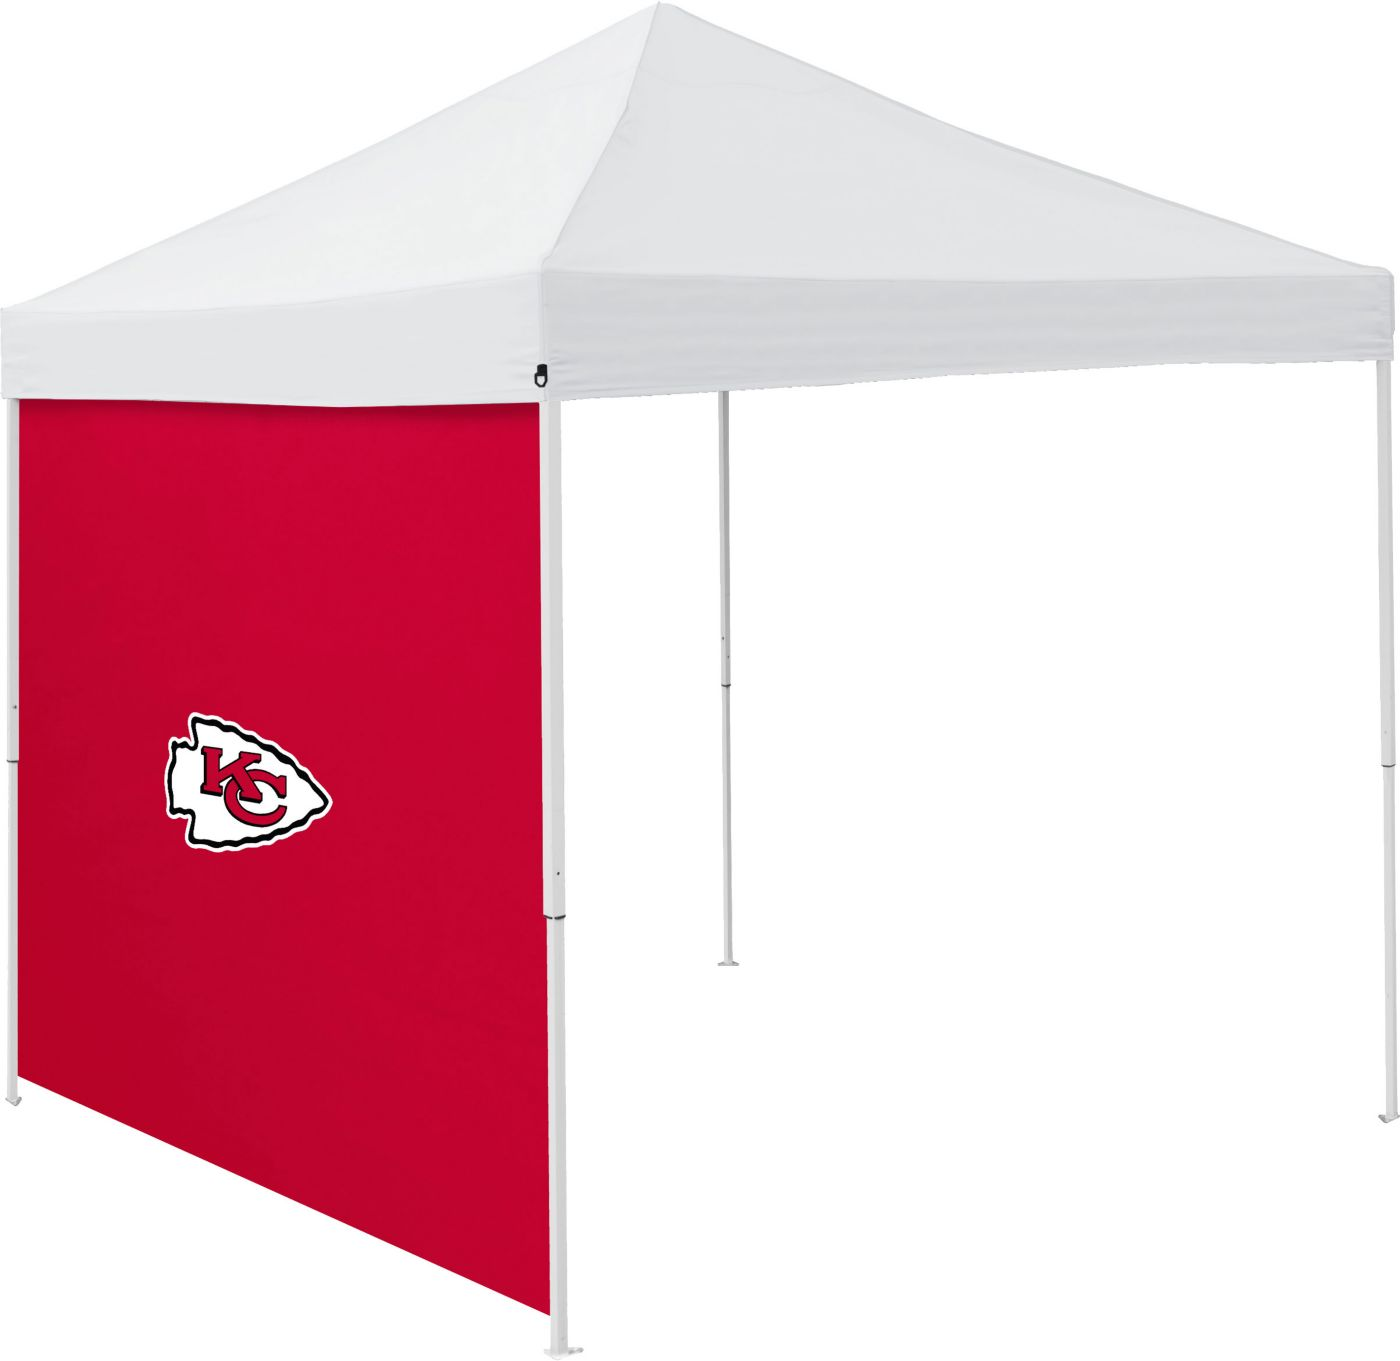 Kansas City Chiefs Tent Side Panel